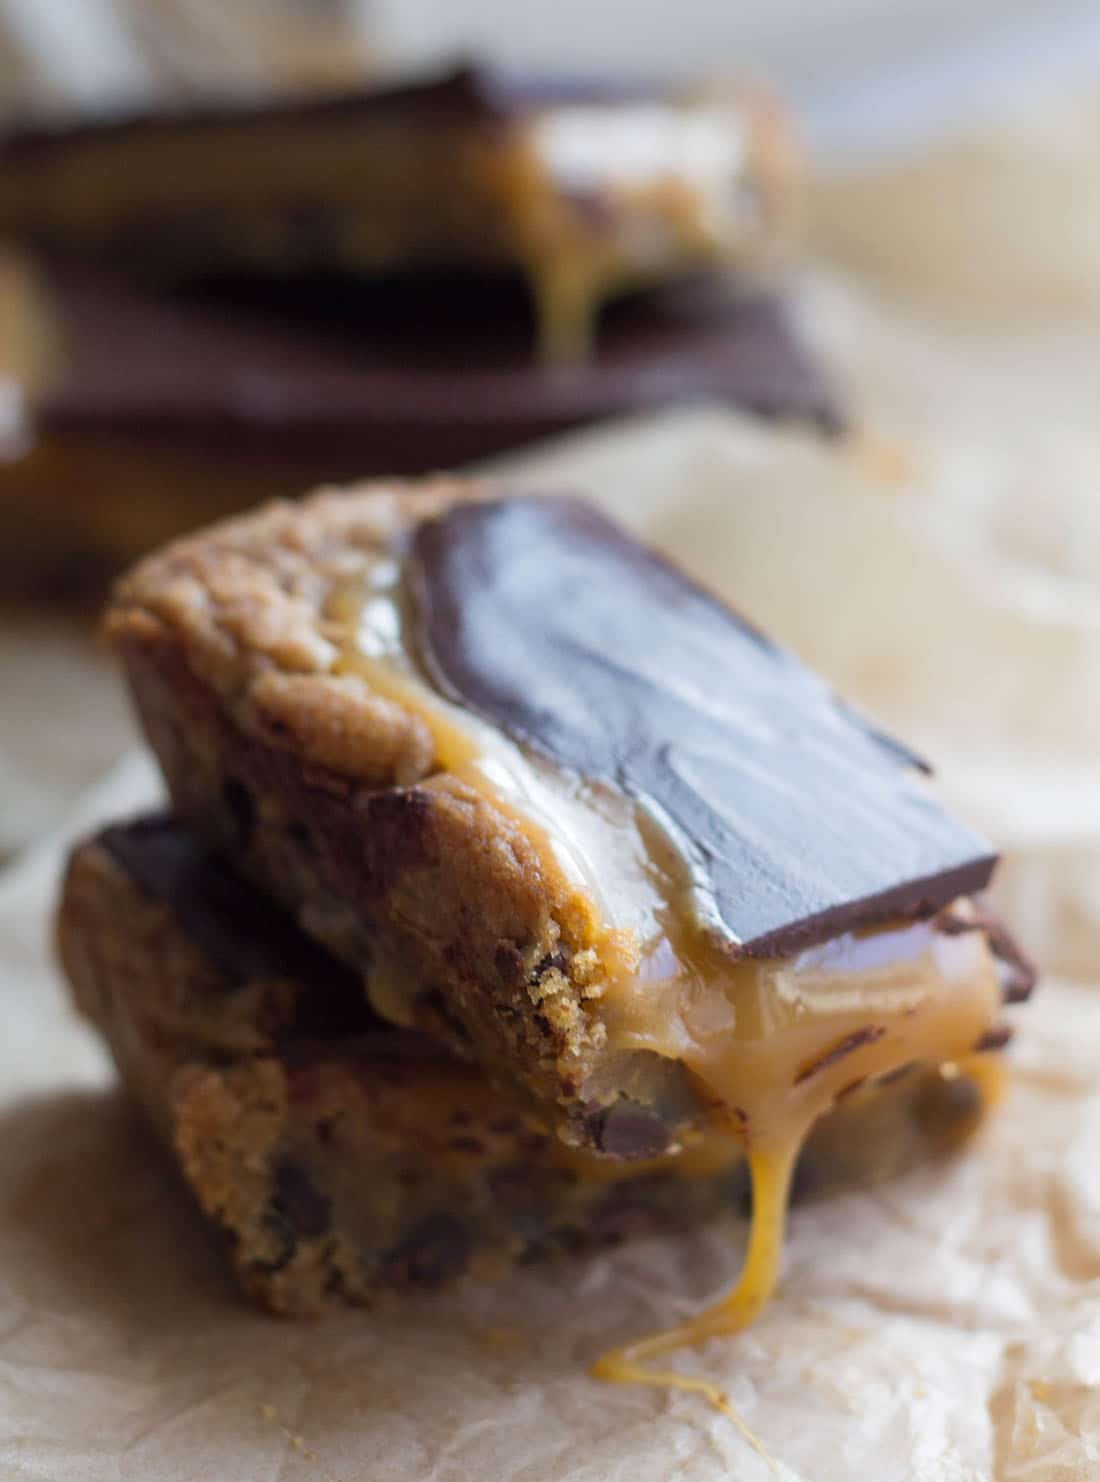 A close up of a piece of blondie dripping with chocolate and caramel